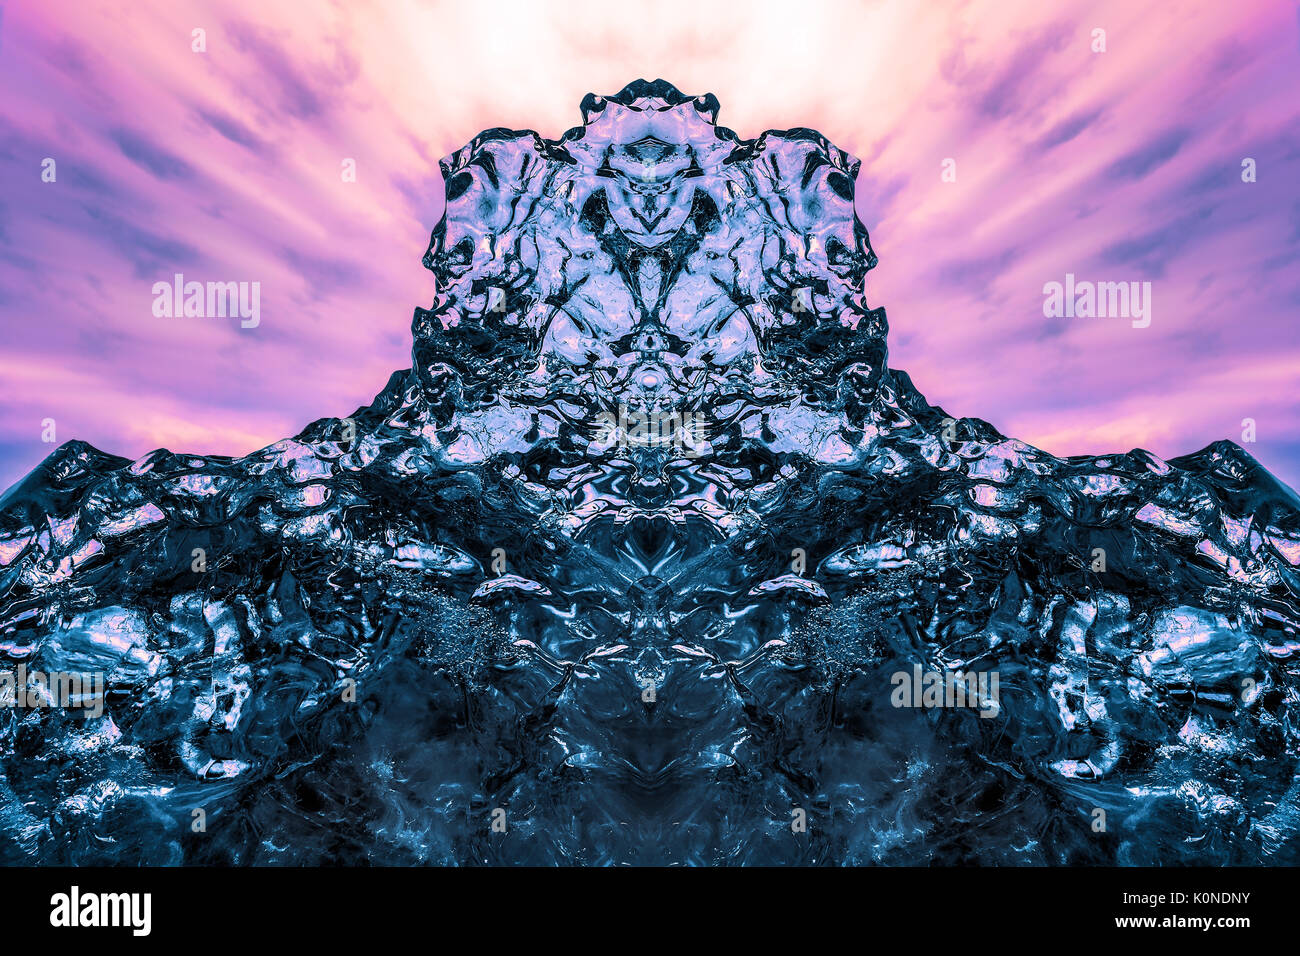 Abstract ice formation mirrored at Jokulsarlon Beach Southeast Iceland - Stock Image